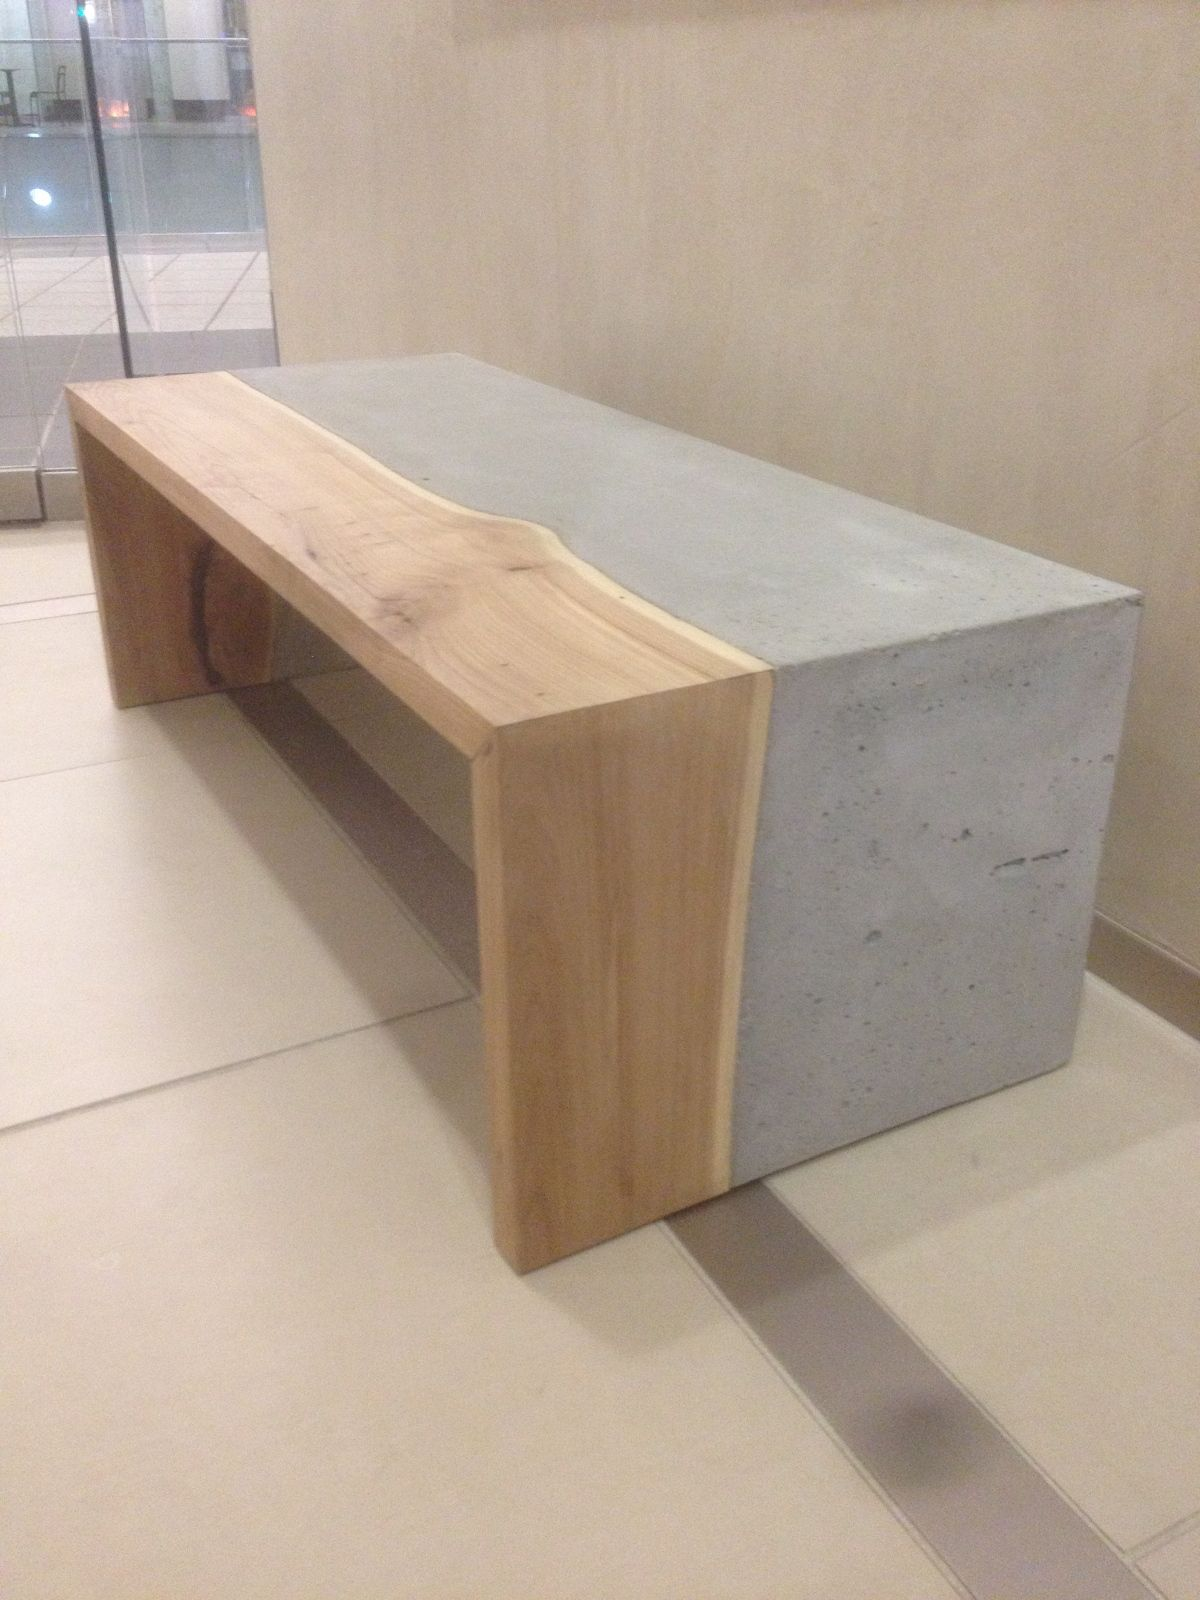 Couchtisch Beton Diy Concrete Coffee Tables You Can Buy Or Build Yourself Furniture